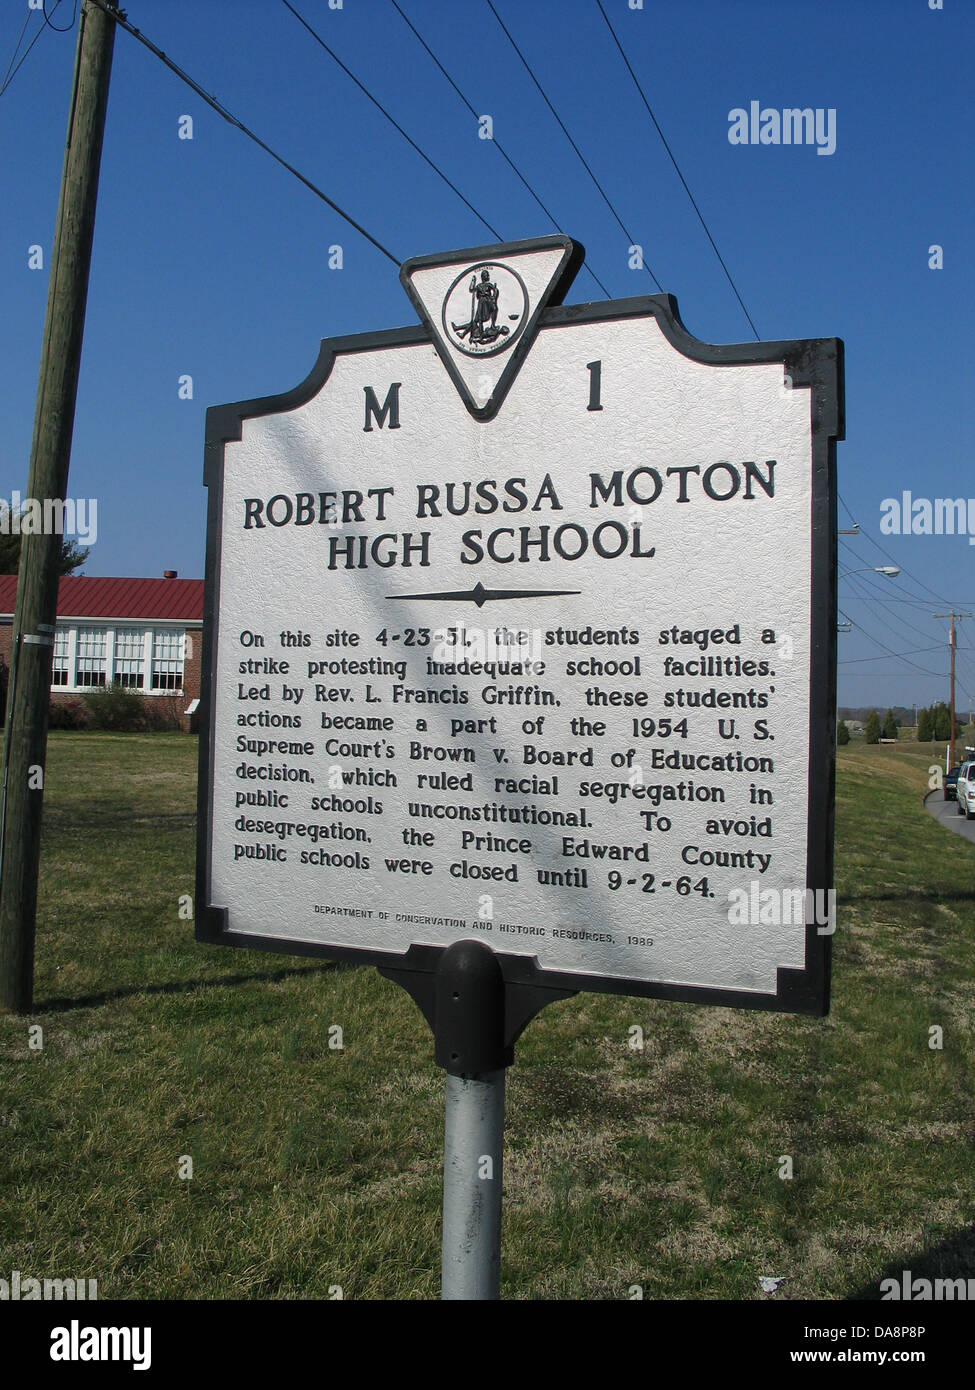 ROBERT RUSSA MORTON HIGH SCHOOL On this site 4-23-51, the students staged a strike protesting inadequate school - Stock Image